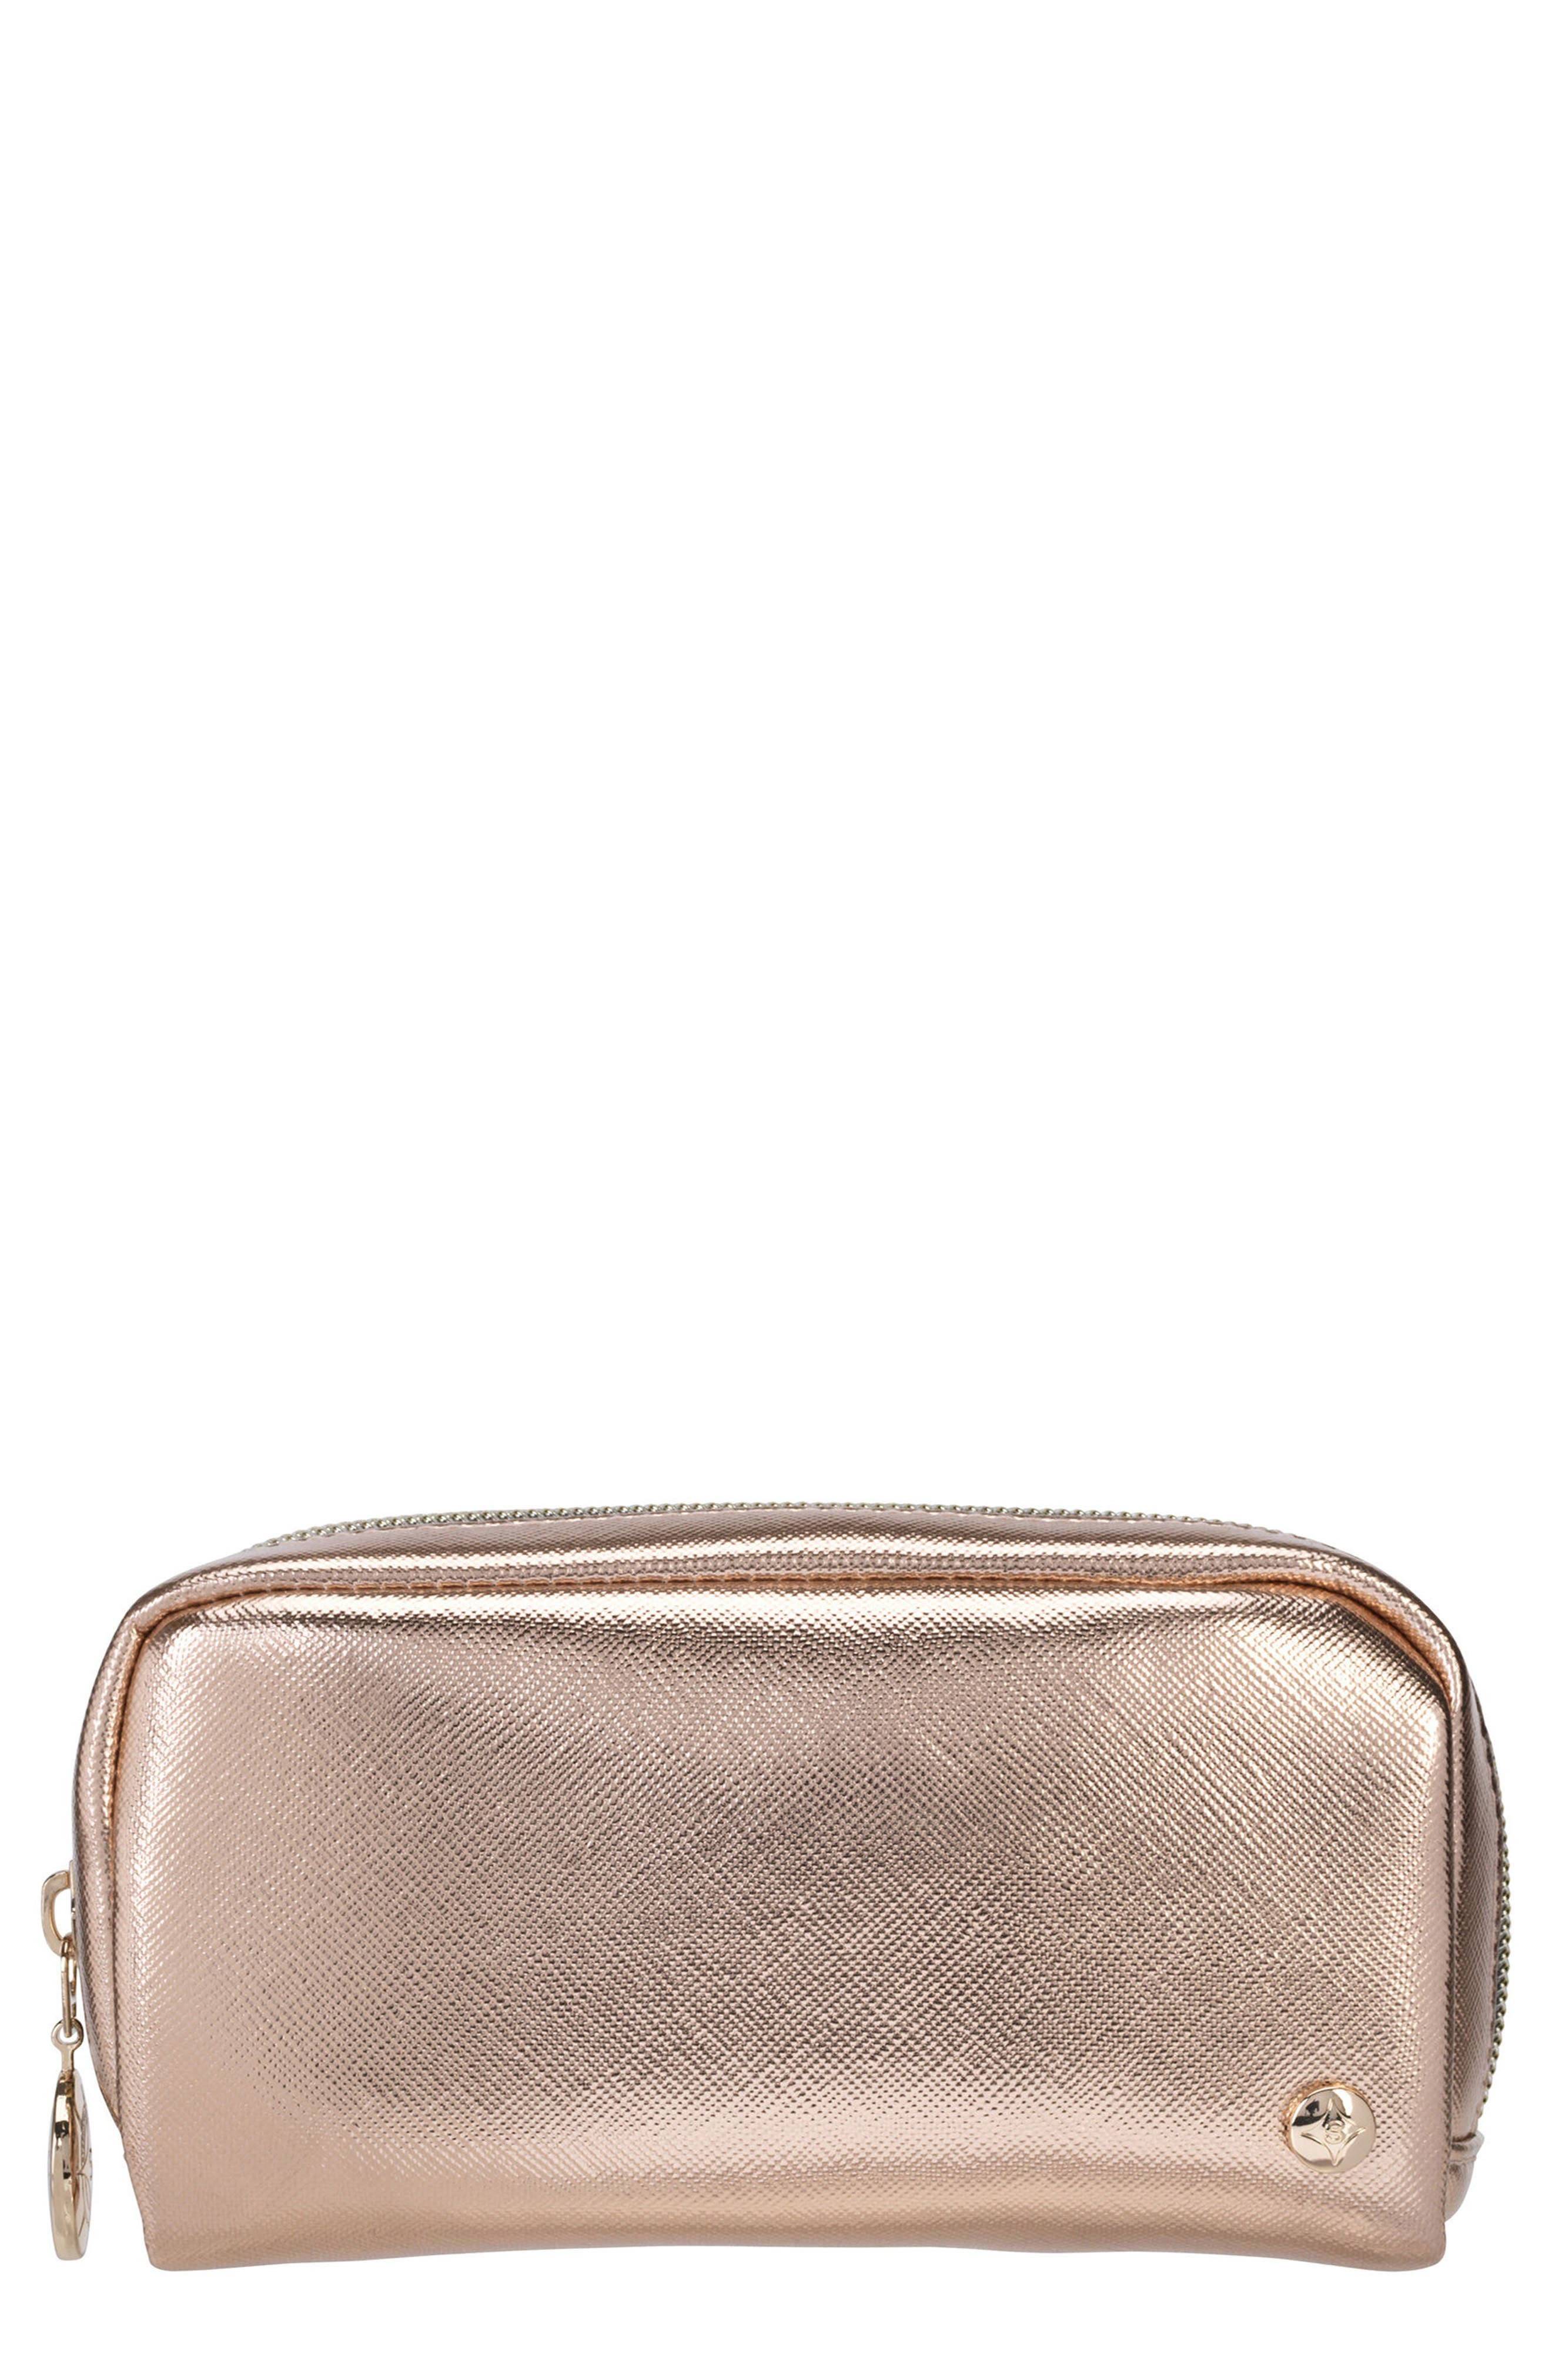 Stephanie Johnson Monte Carlo Mini Pouch Cosmetics Case